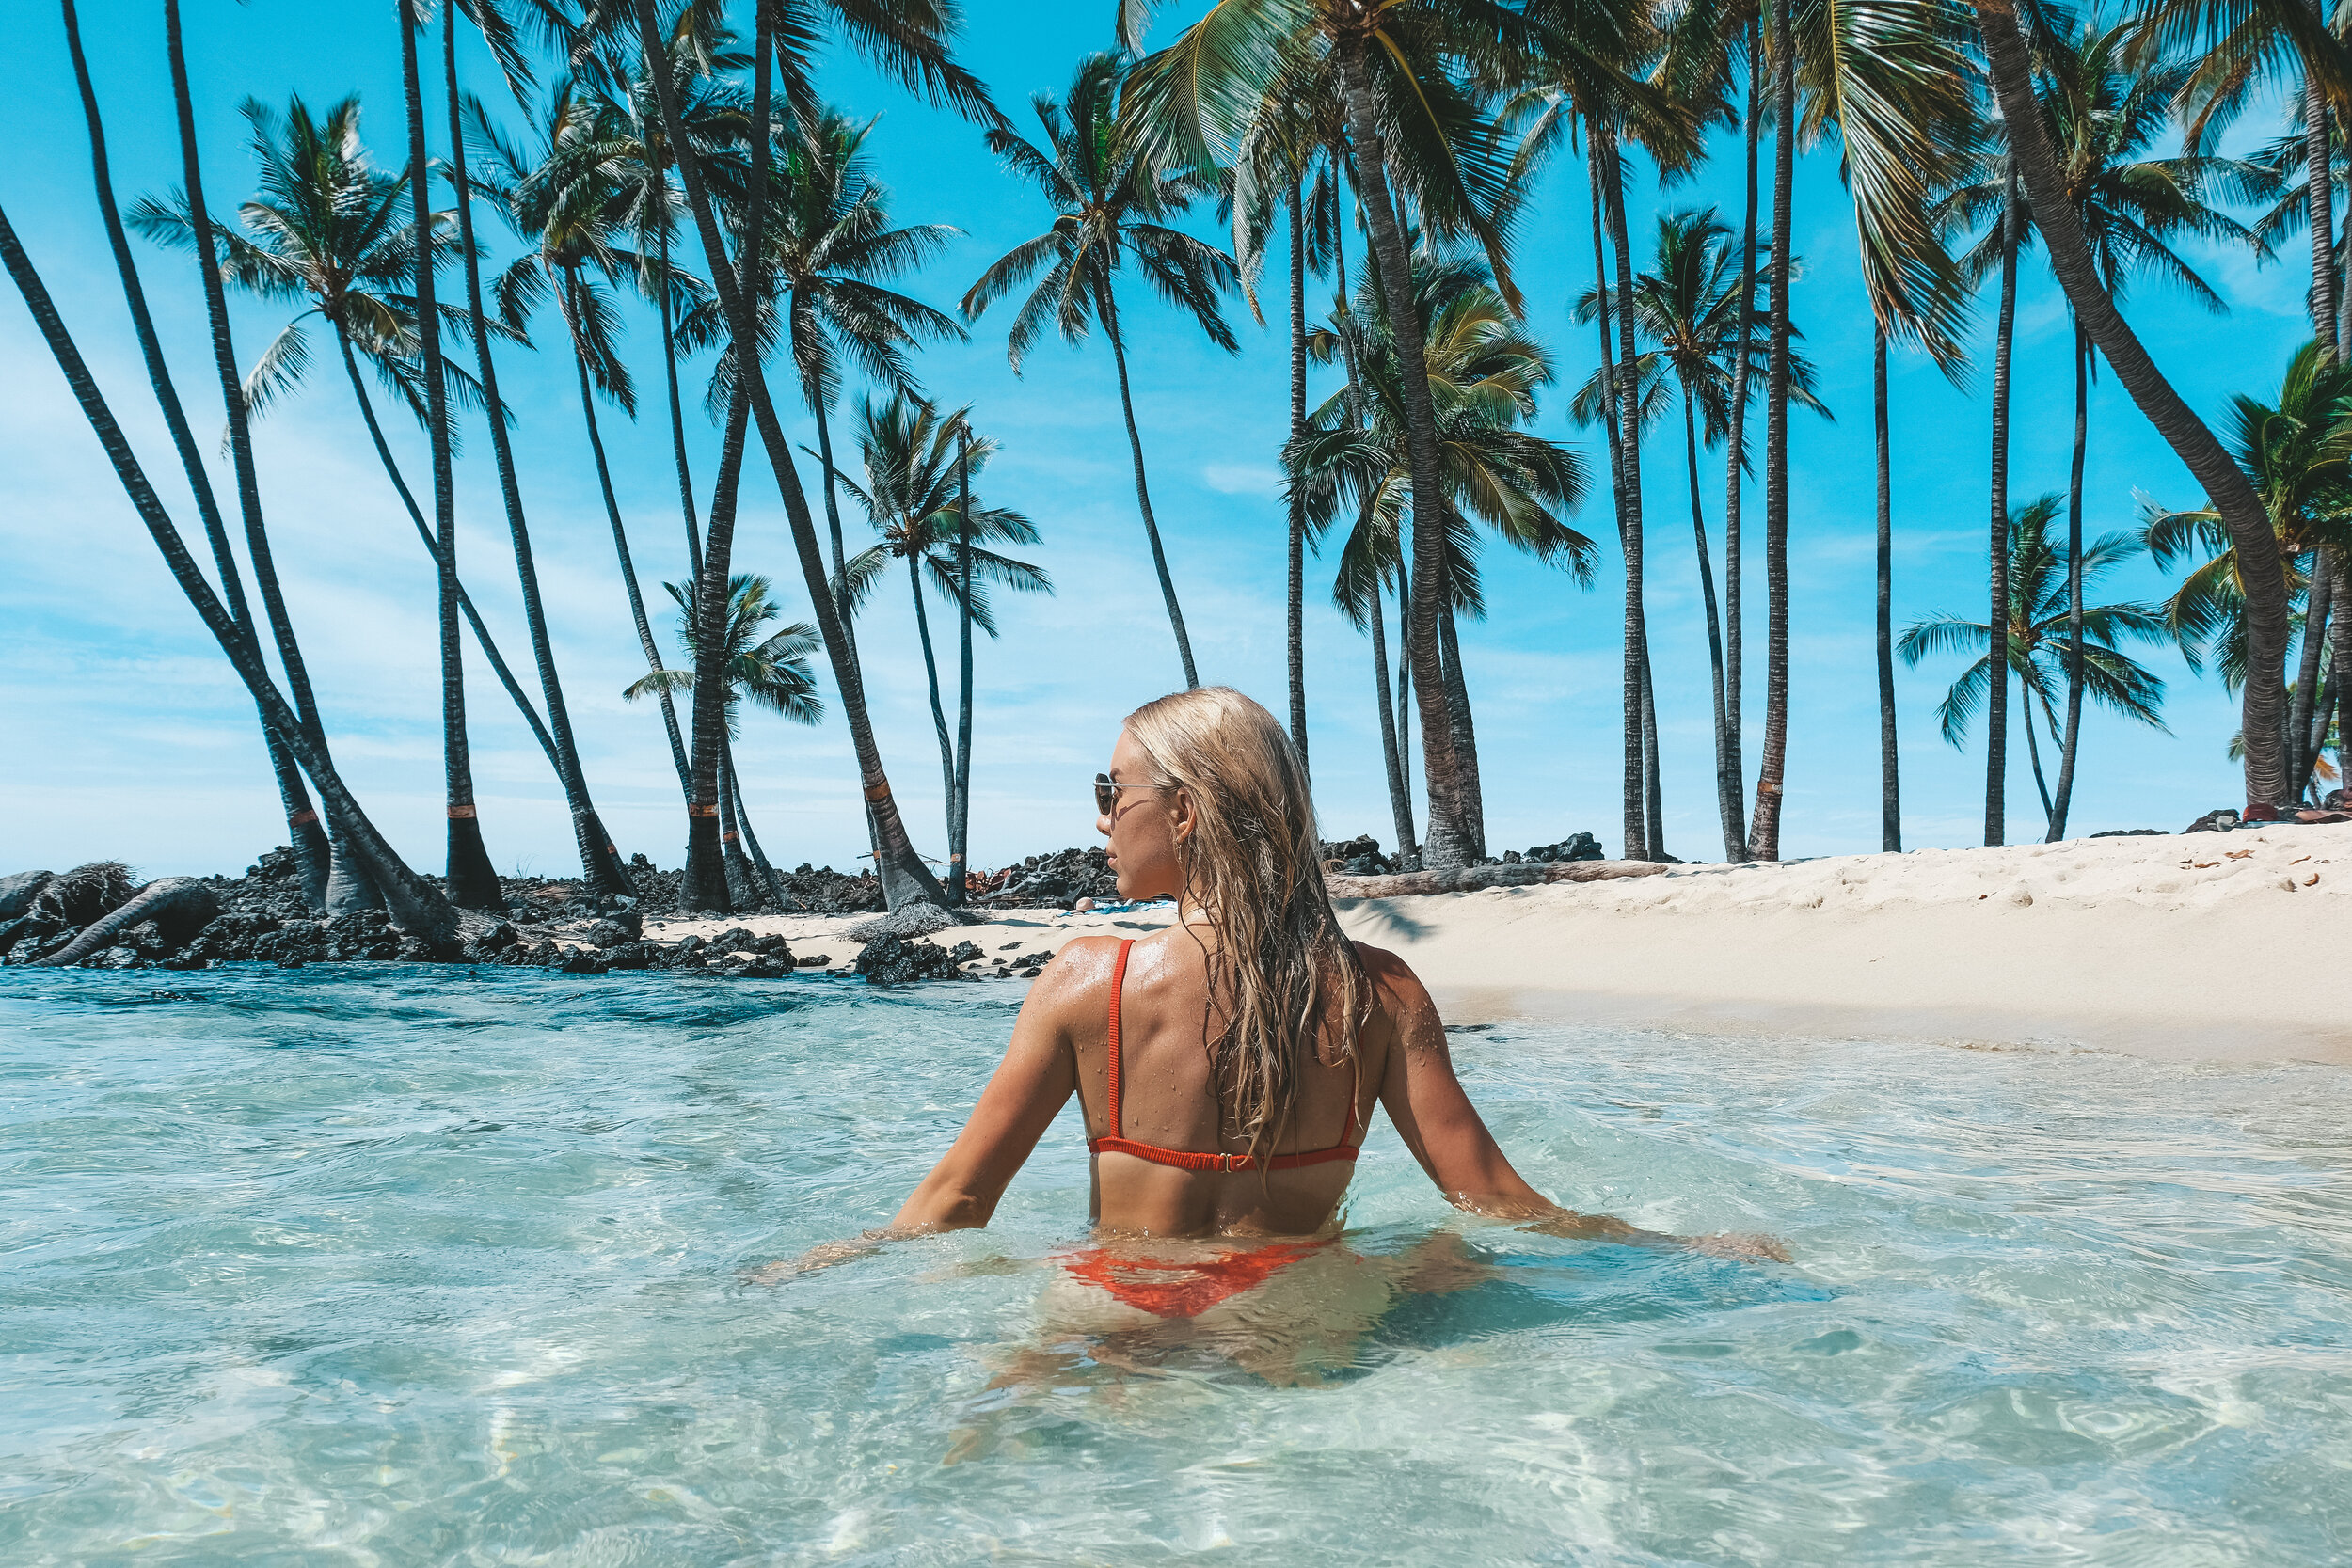 To things to do on the big island hawaii - solo female travel